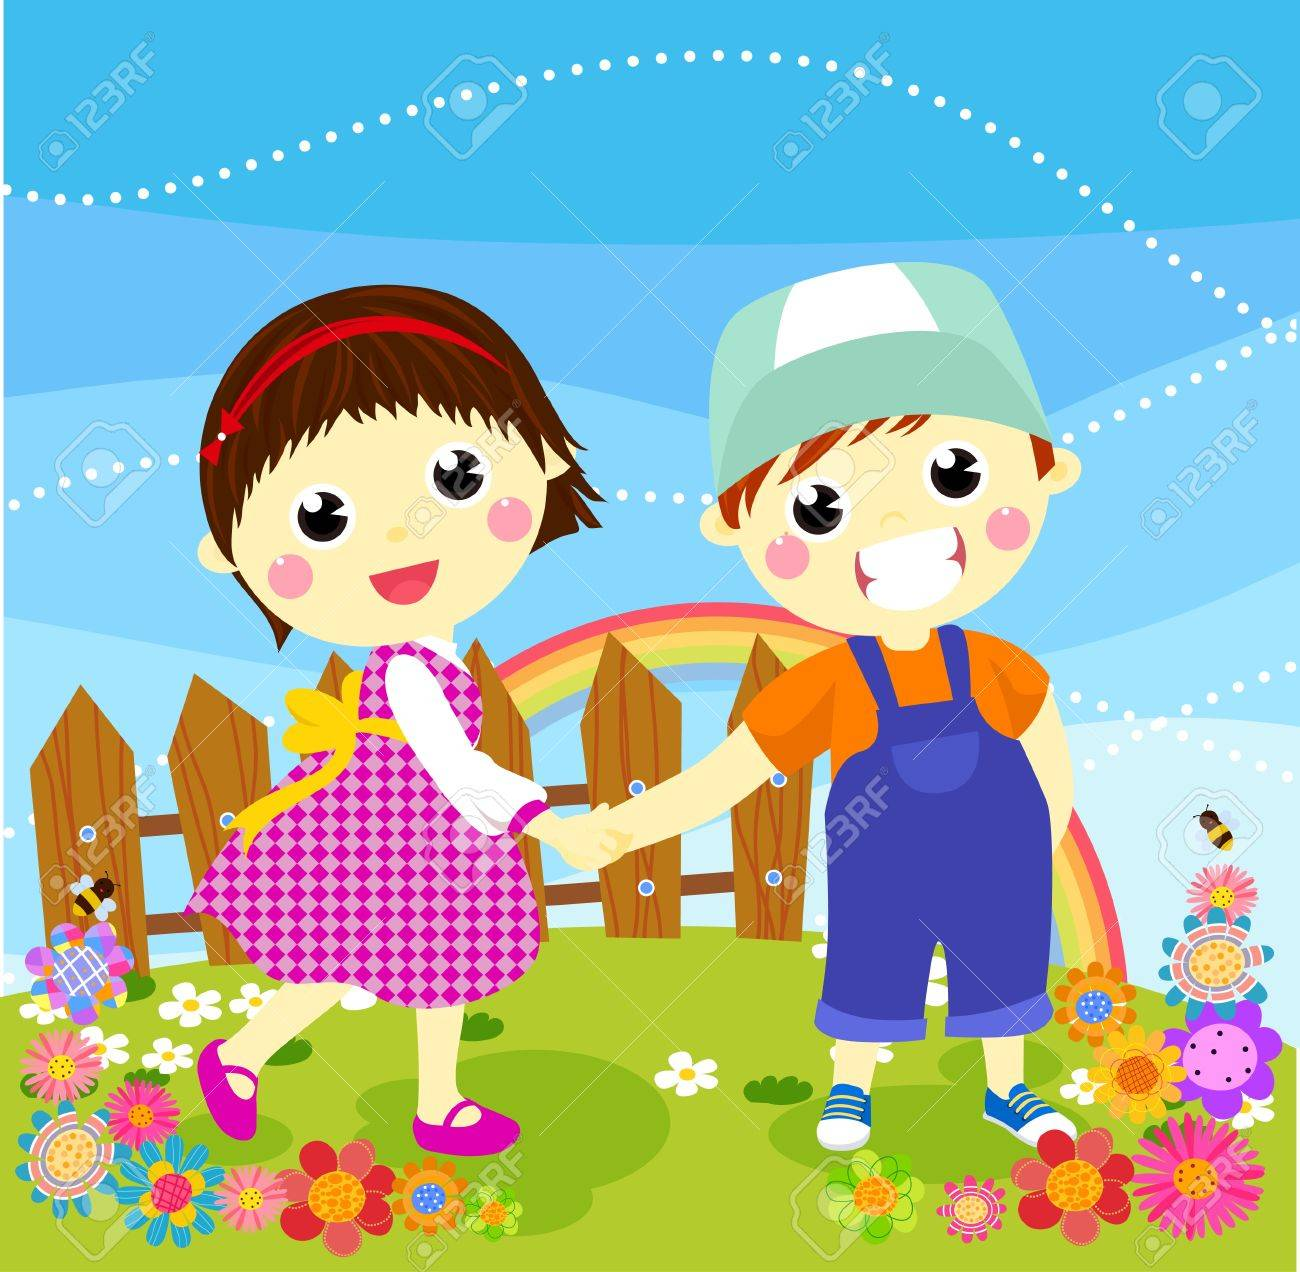 Vector illustration of cute boy and girl Stock Vector - 15170262